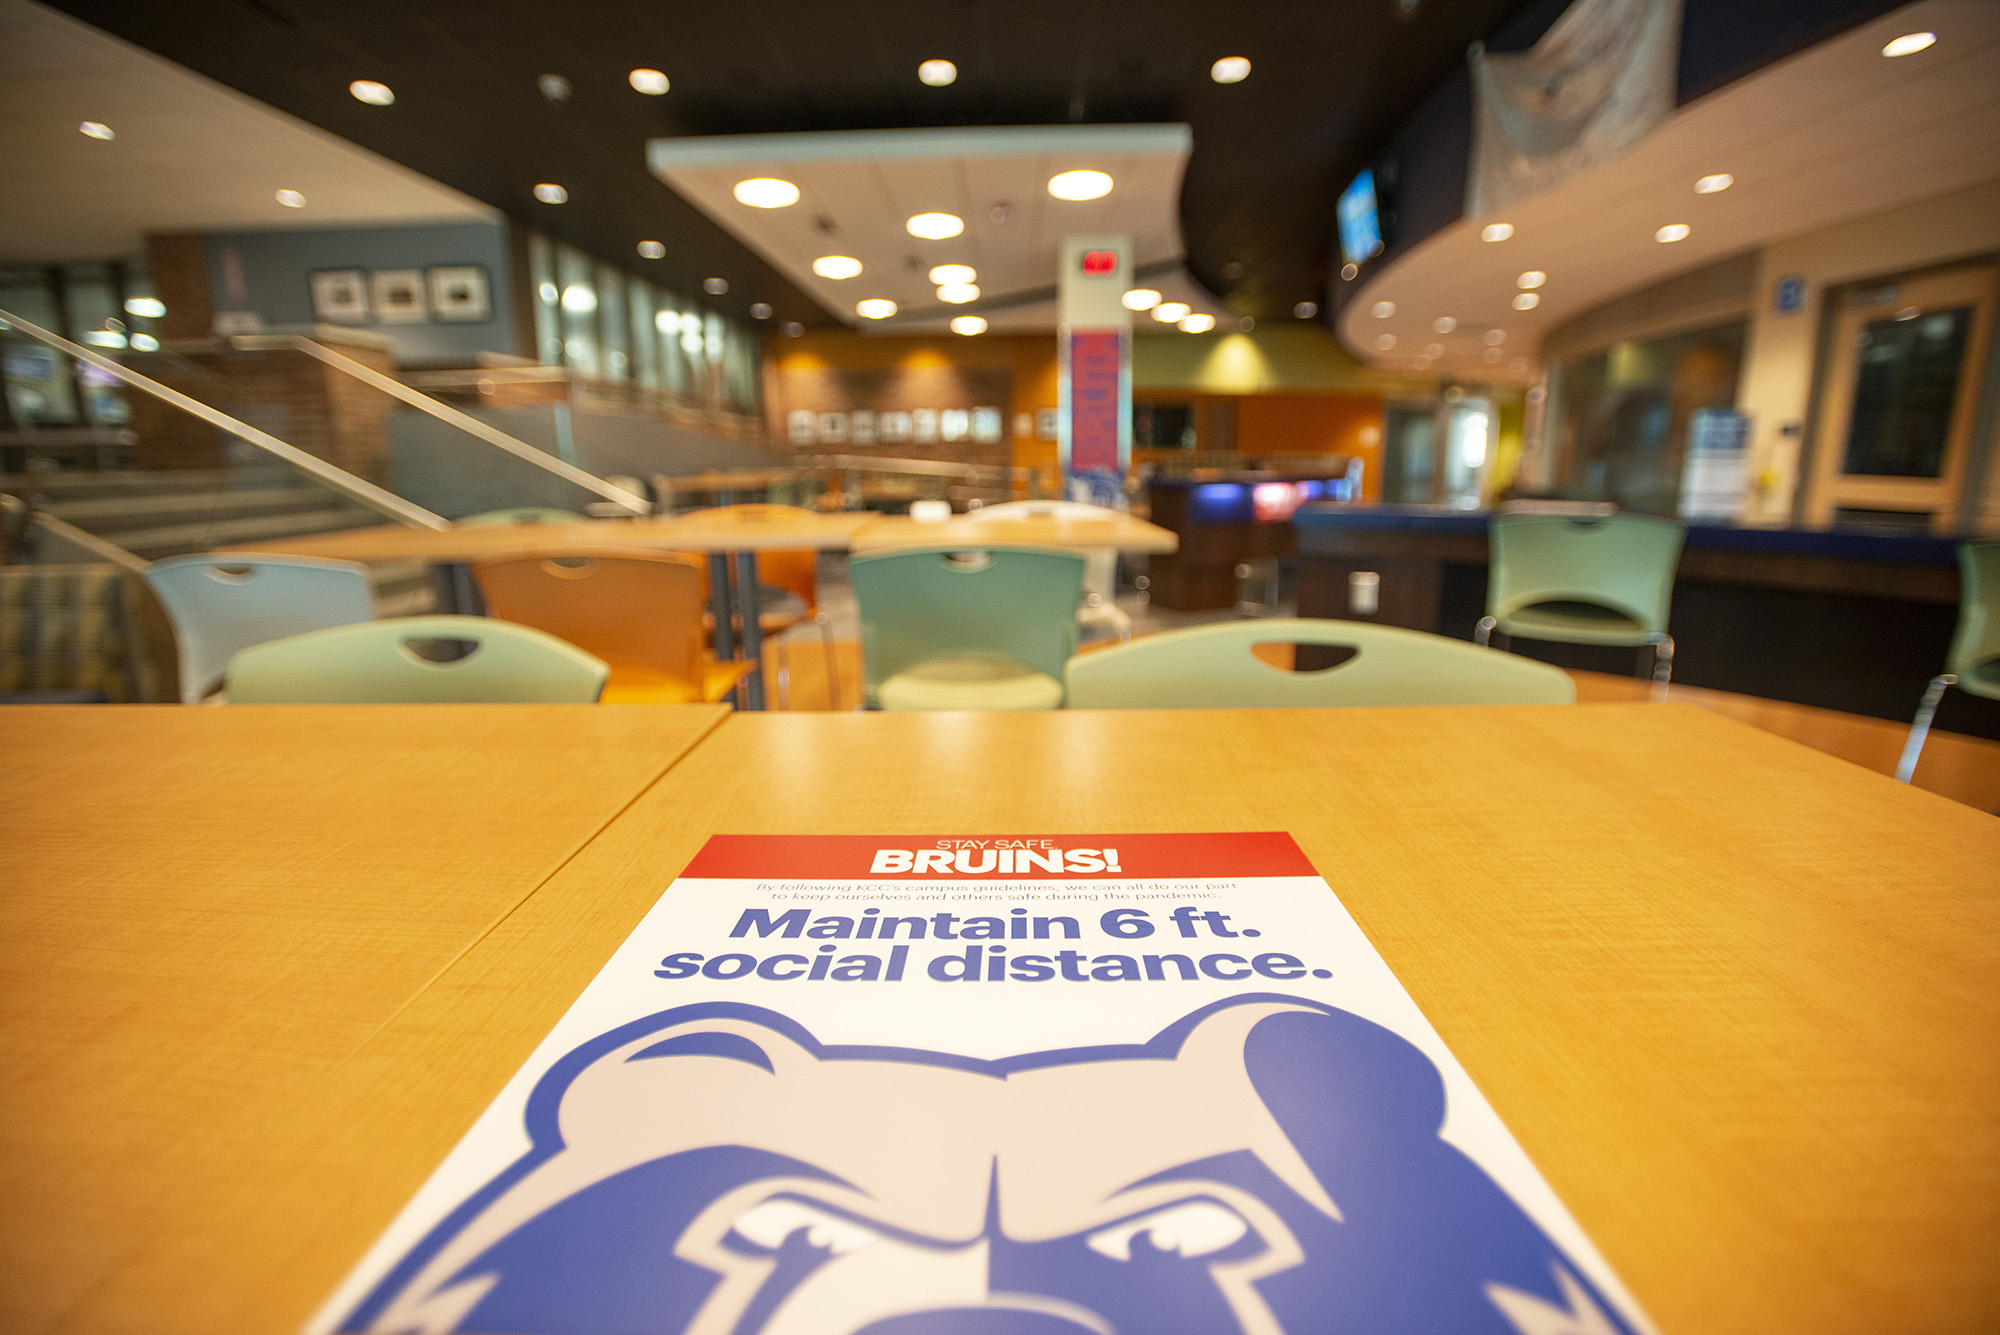 A sign encouraging visitors to campus to social distance at least 6 feet apart, affixed to a table in the Student Center.